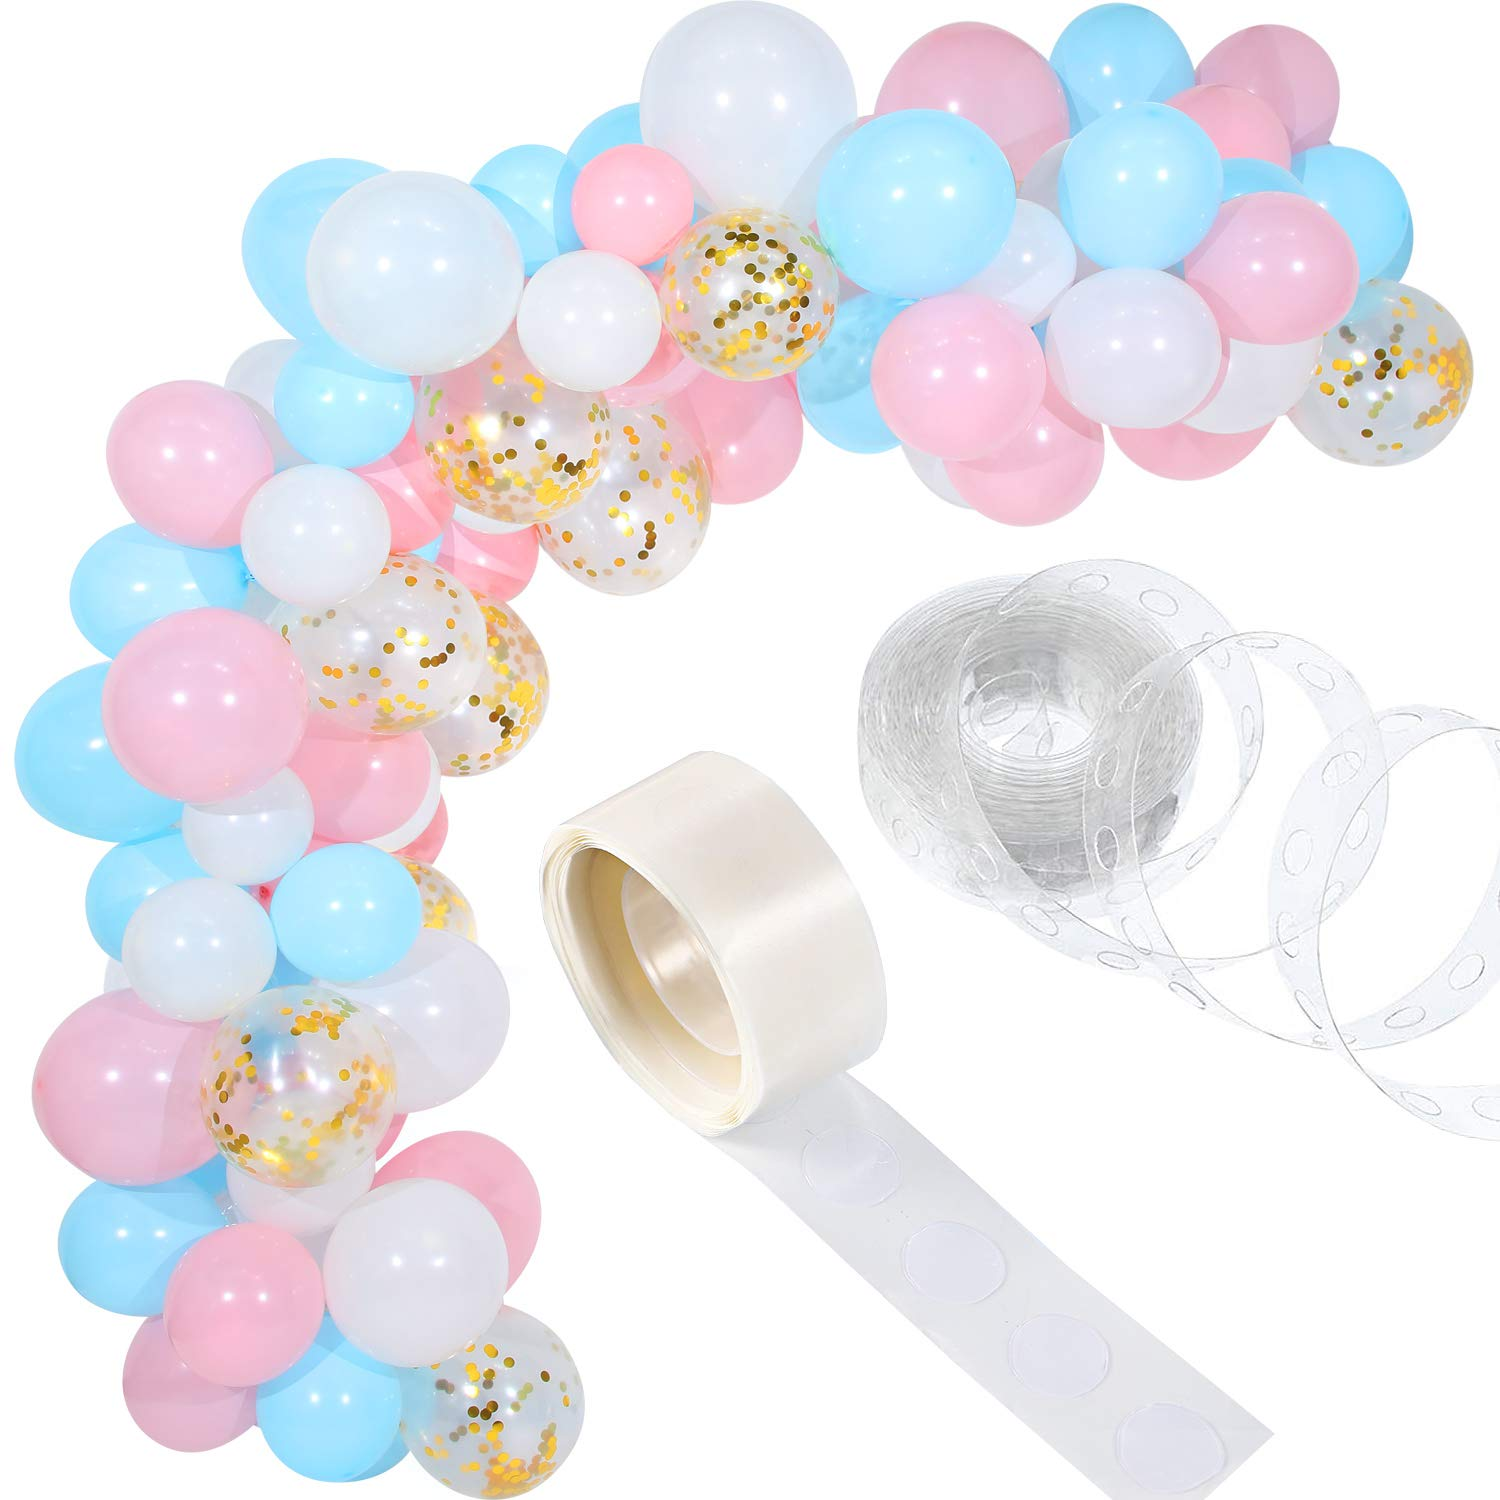 Tatuo 112 Pieces Balloon Garland Kit Balloon Arch Garland For Wedding Birthday Party Supplies Balloons